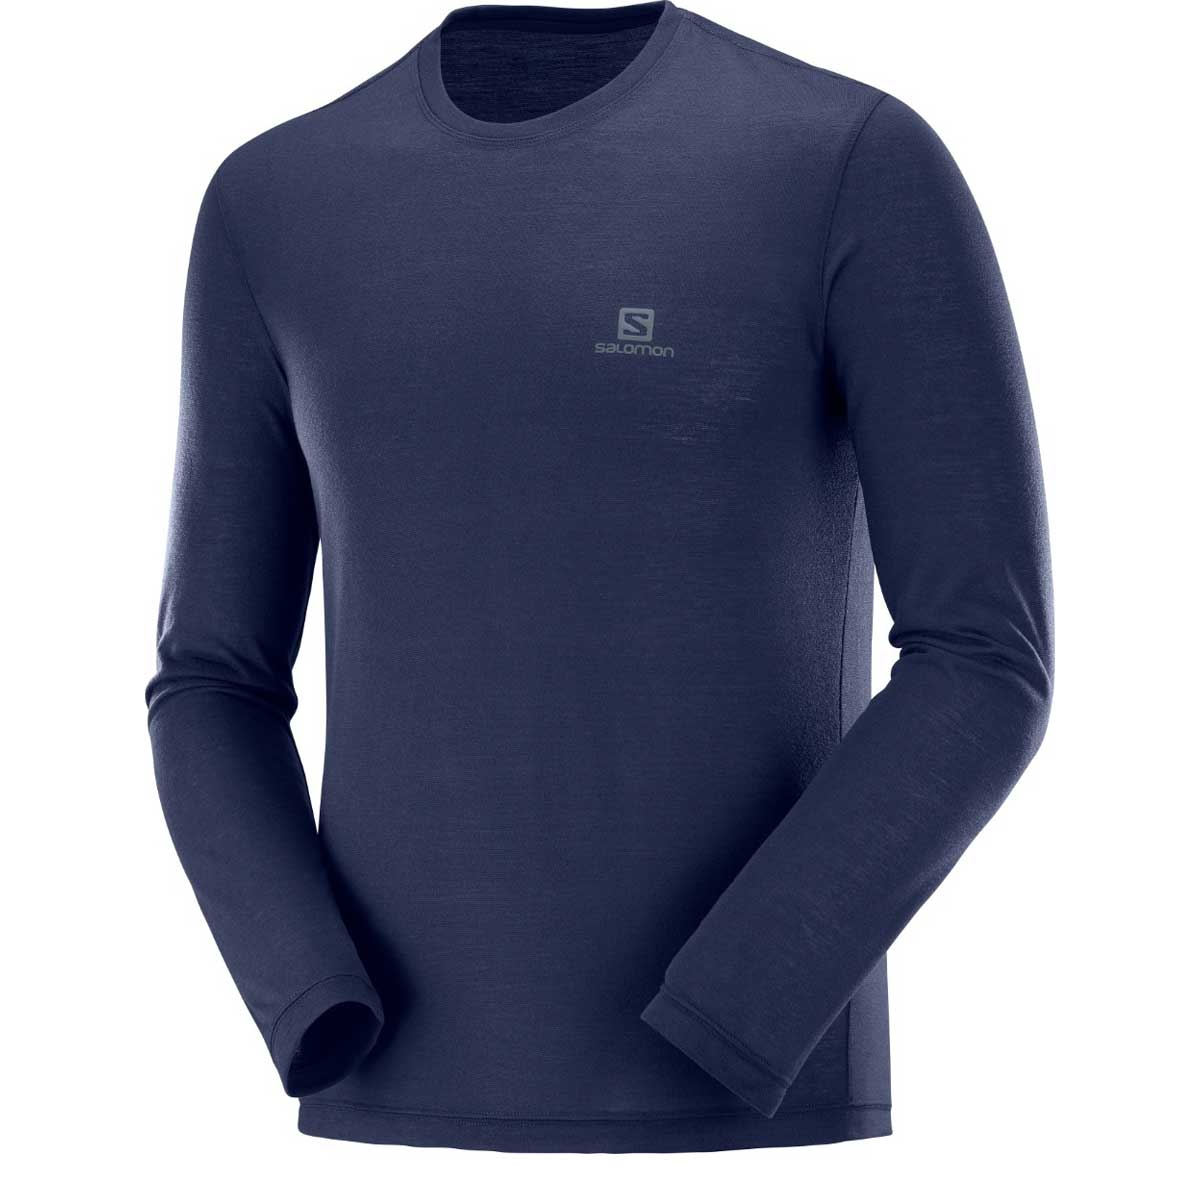 Salomon Men's Explore Long Sleeve Tee in Night Sky